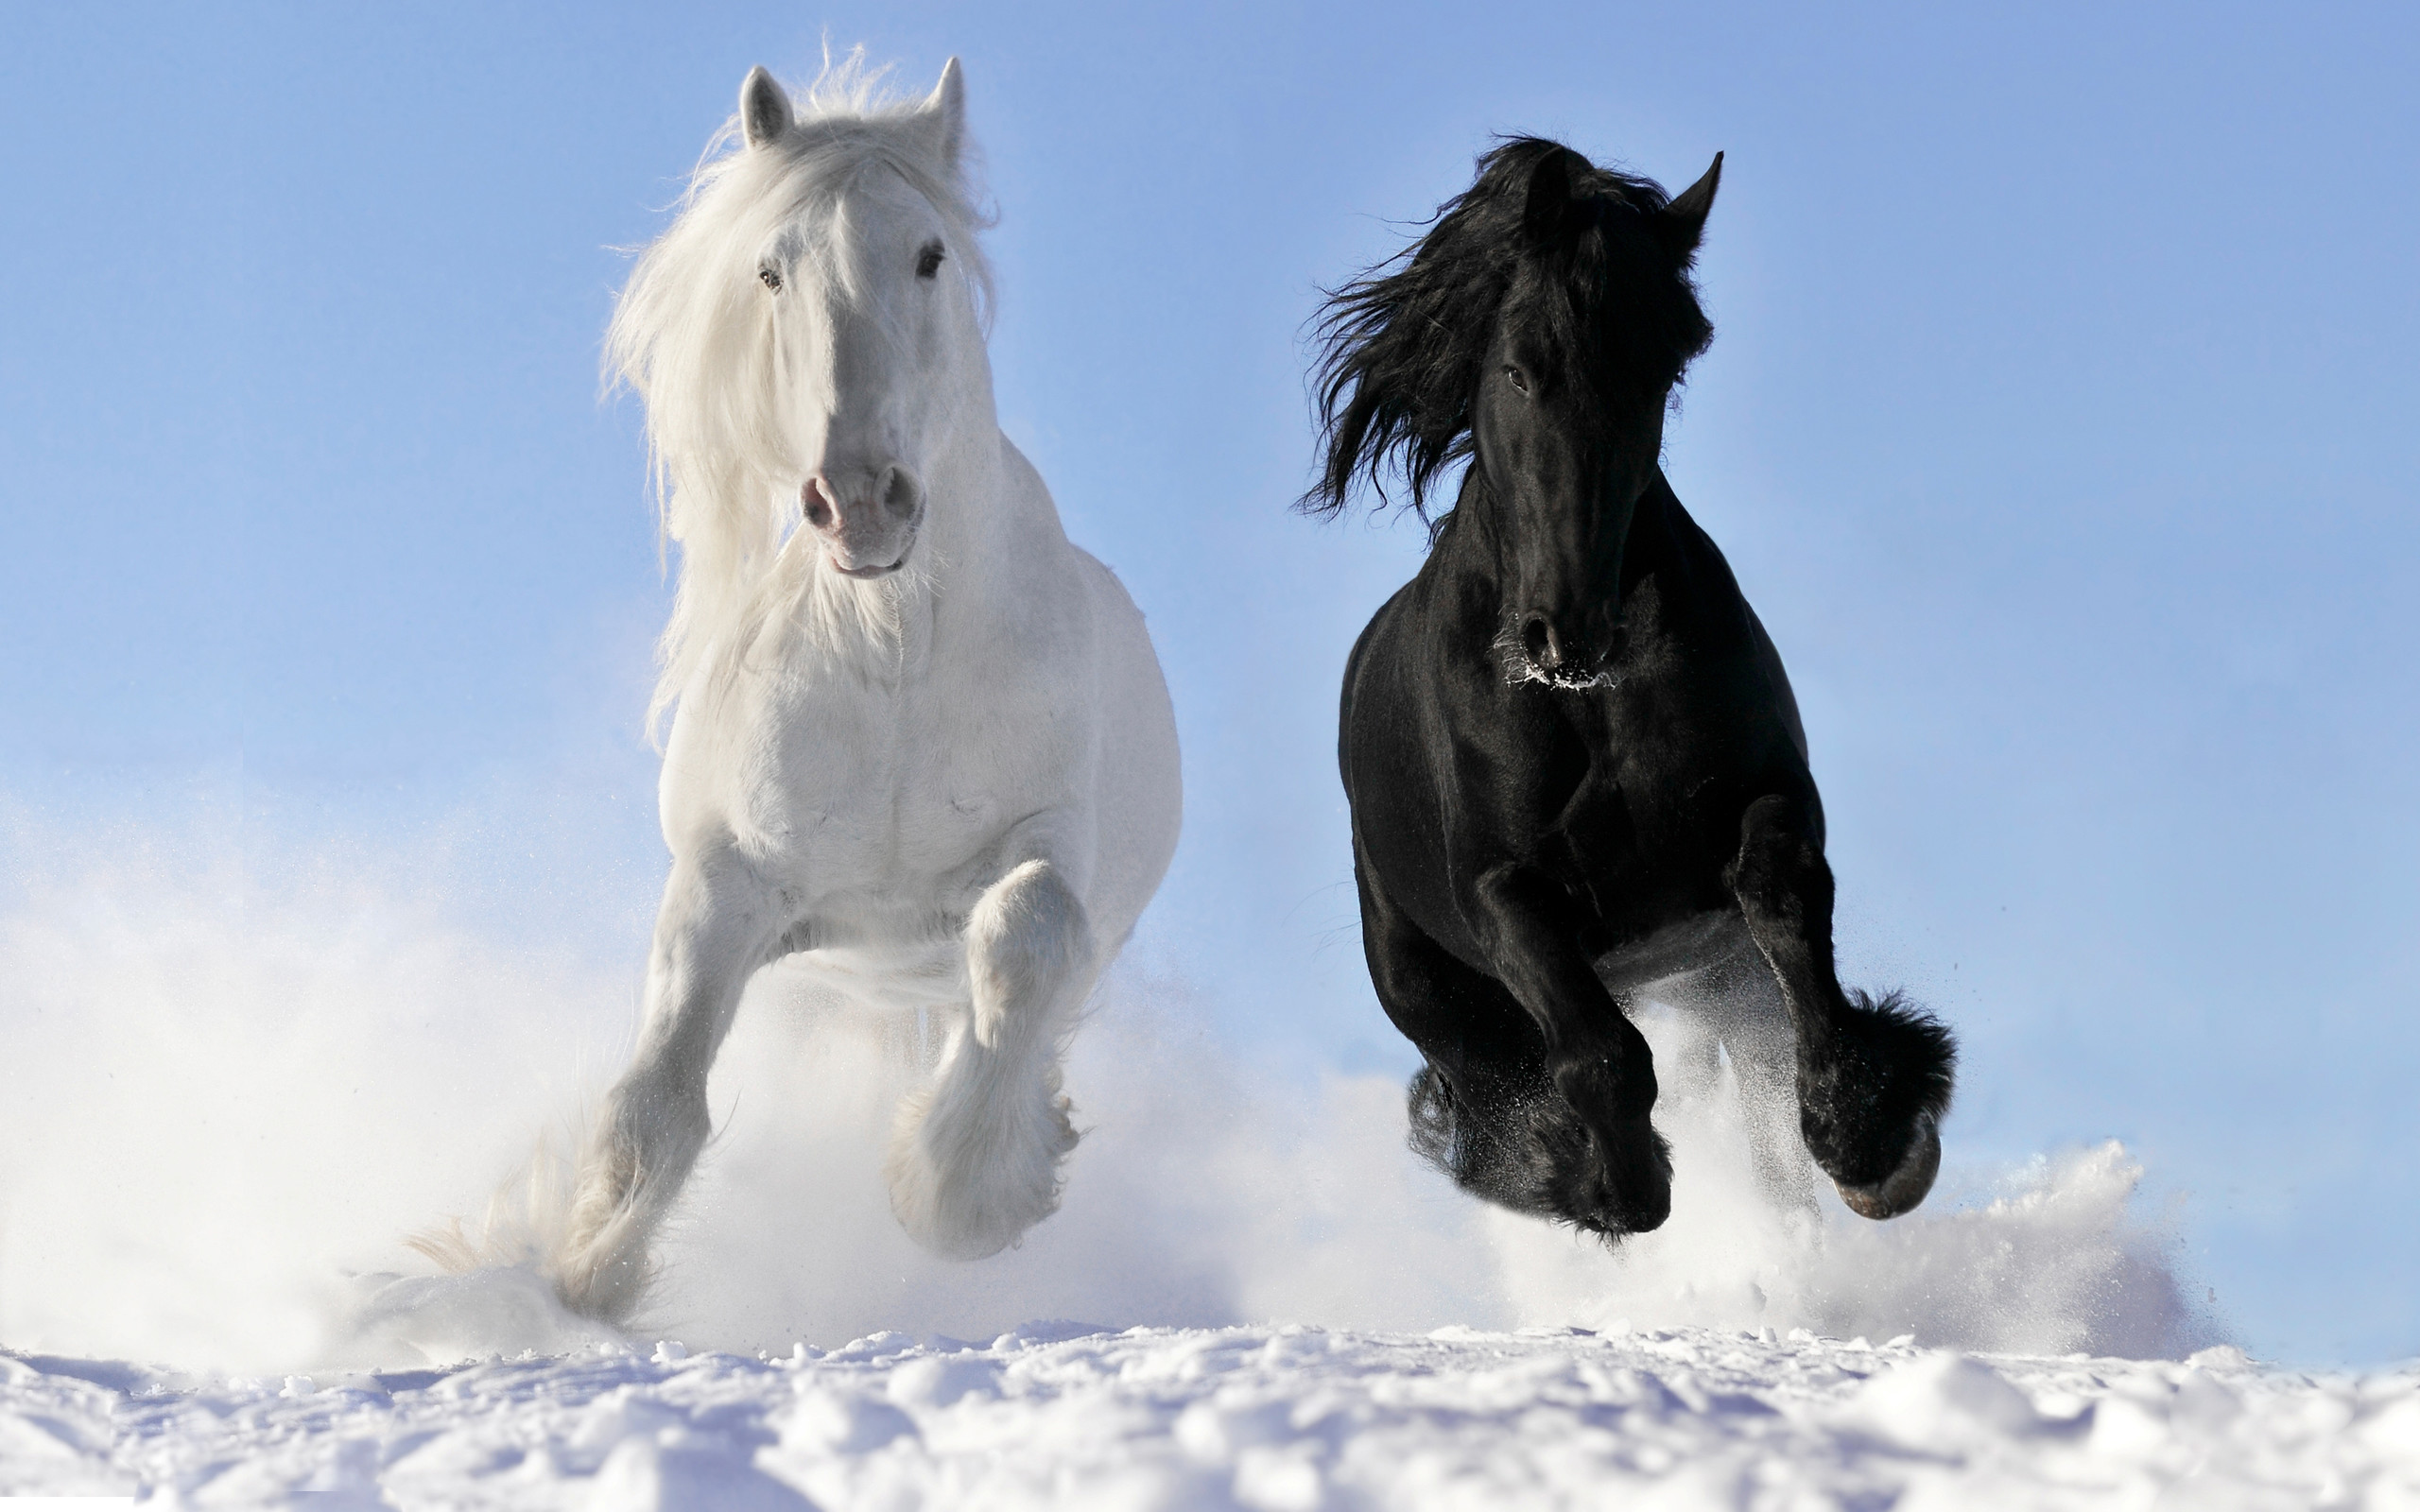 Res: 2560x1600, Animal - Horse Wallpaper